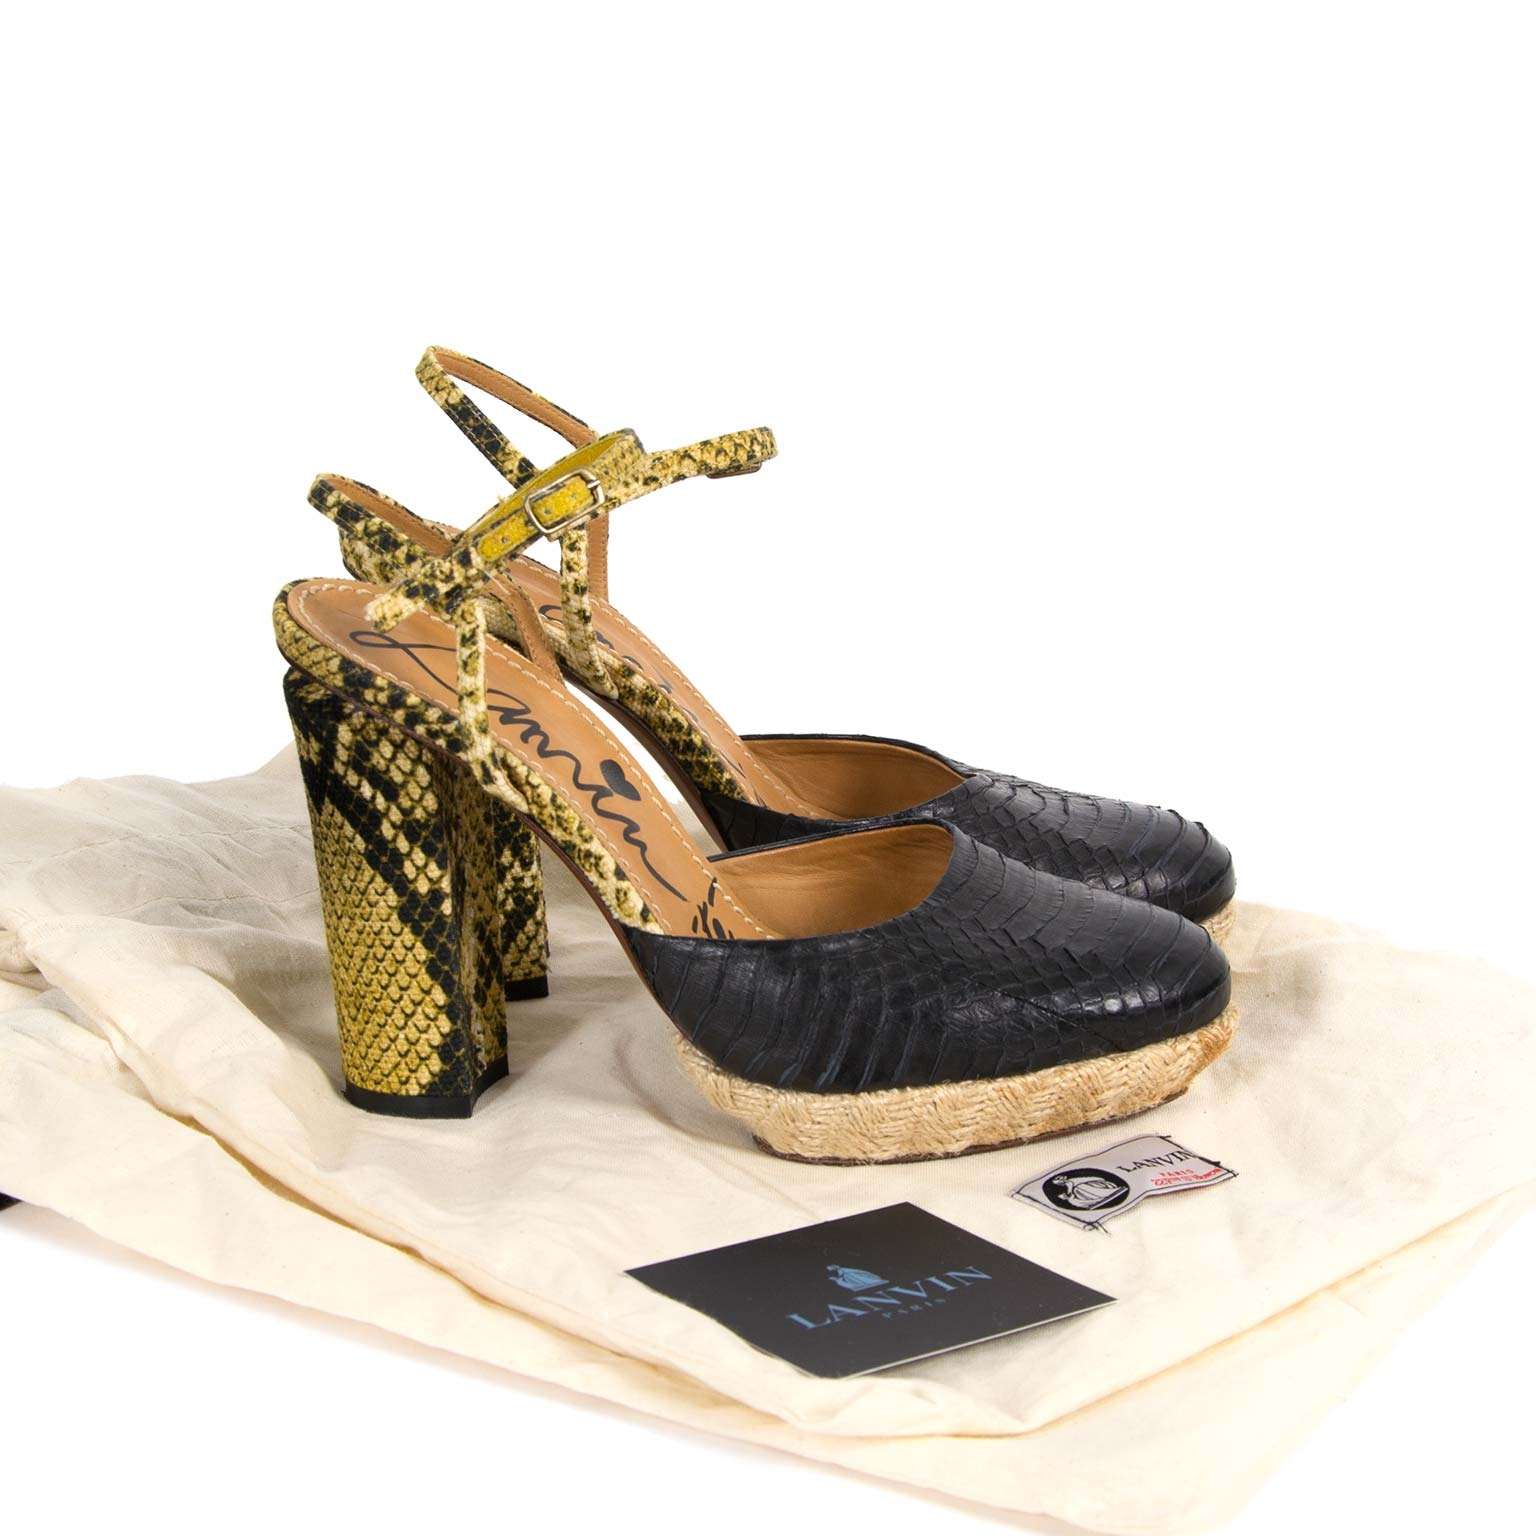 Lanvin Leather Python Sandals - Size 37.5 now for sale at labellov vintage fashion webshop belgium